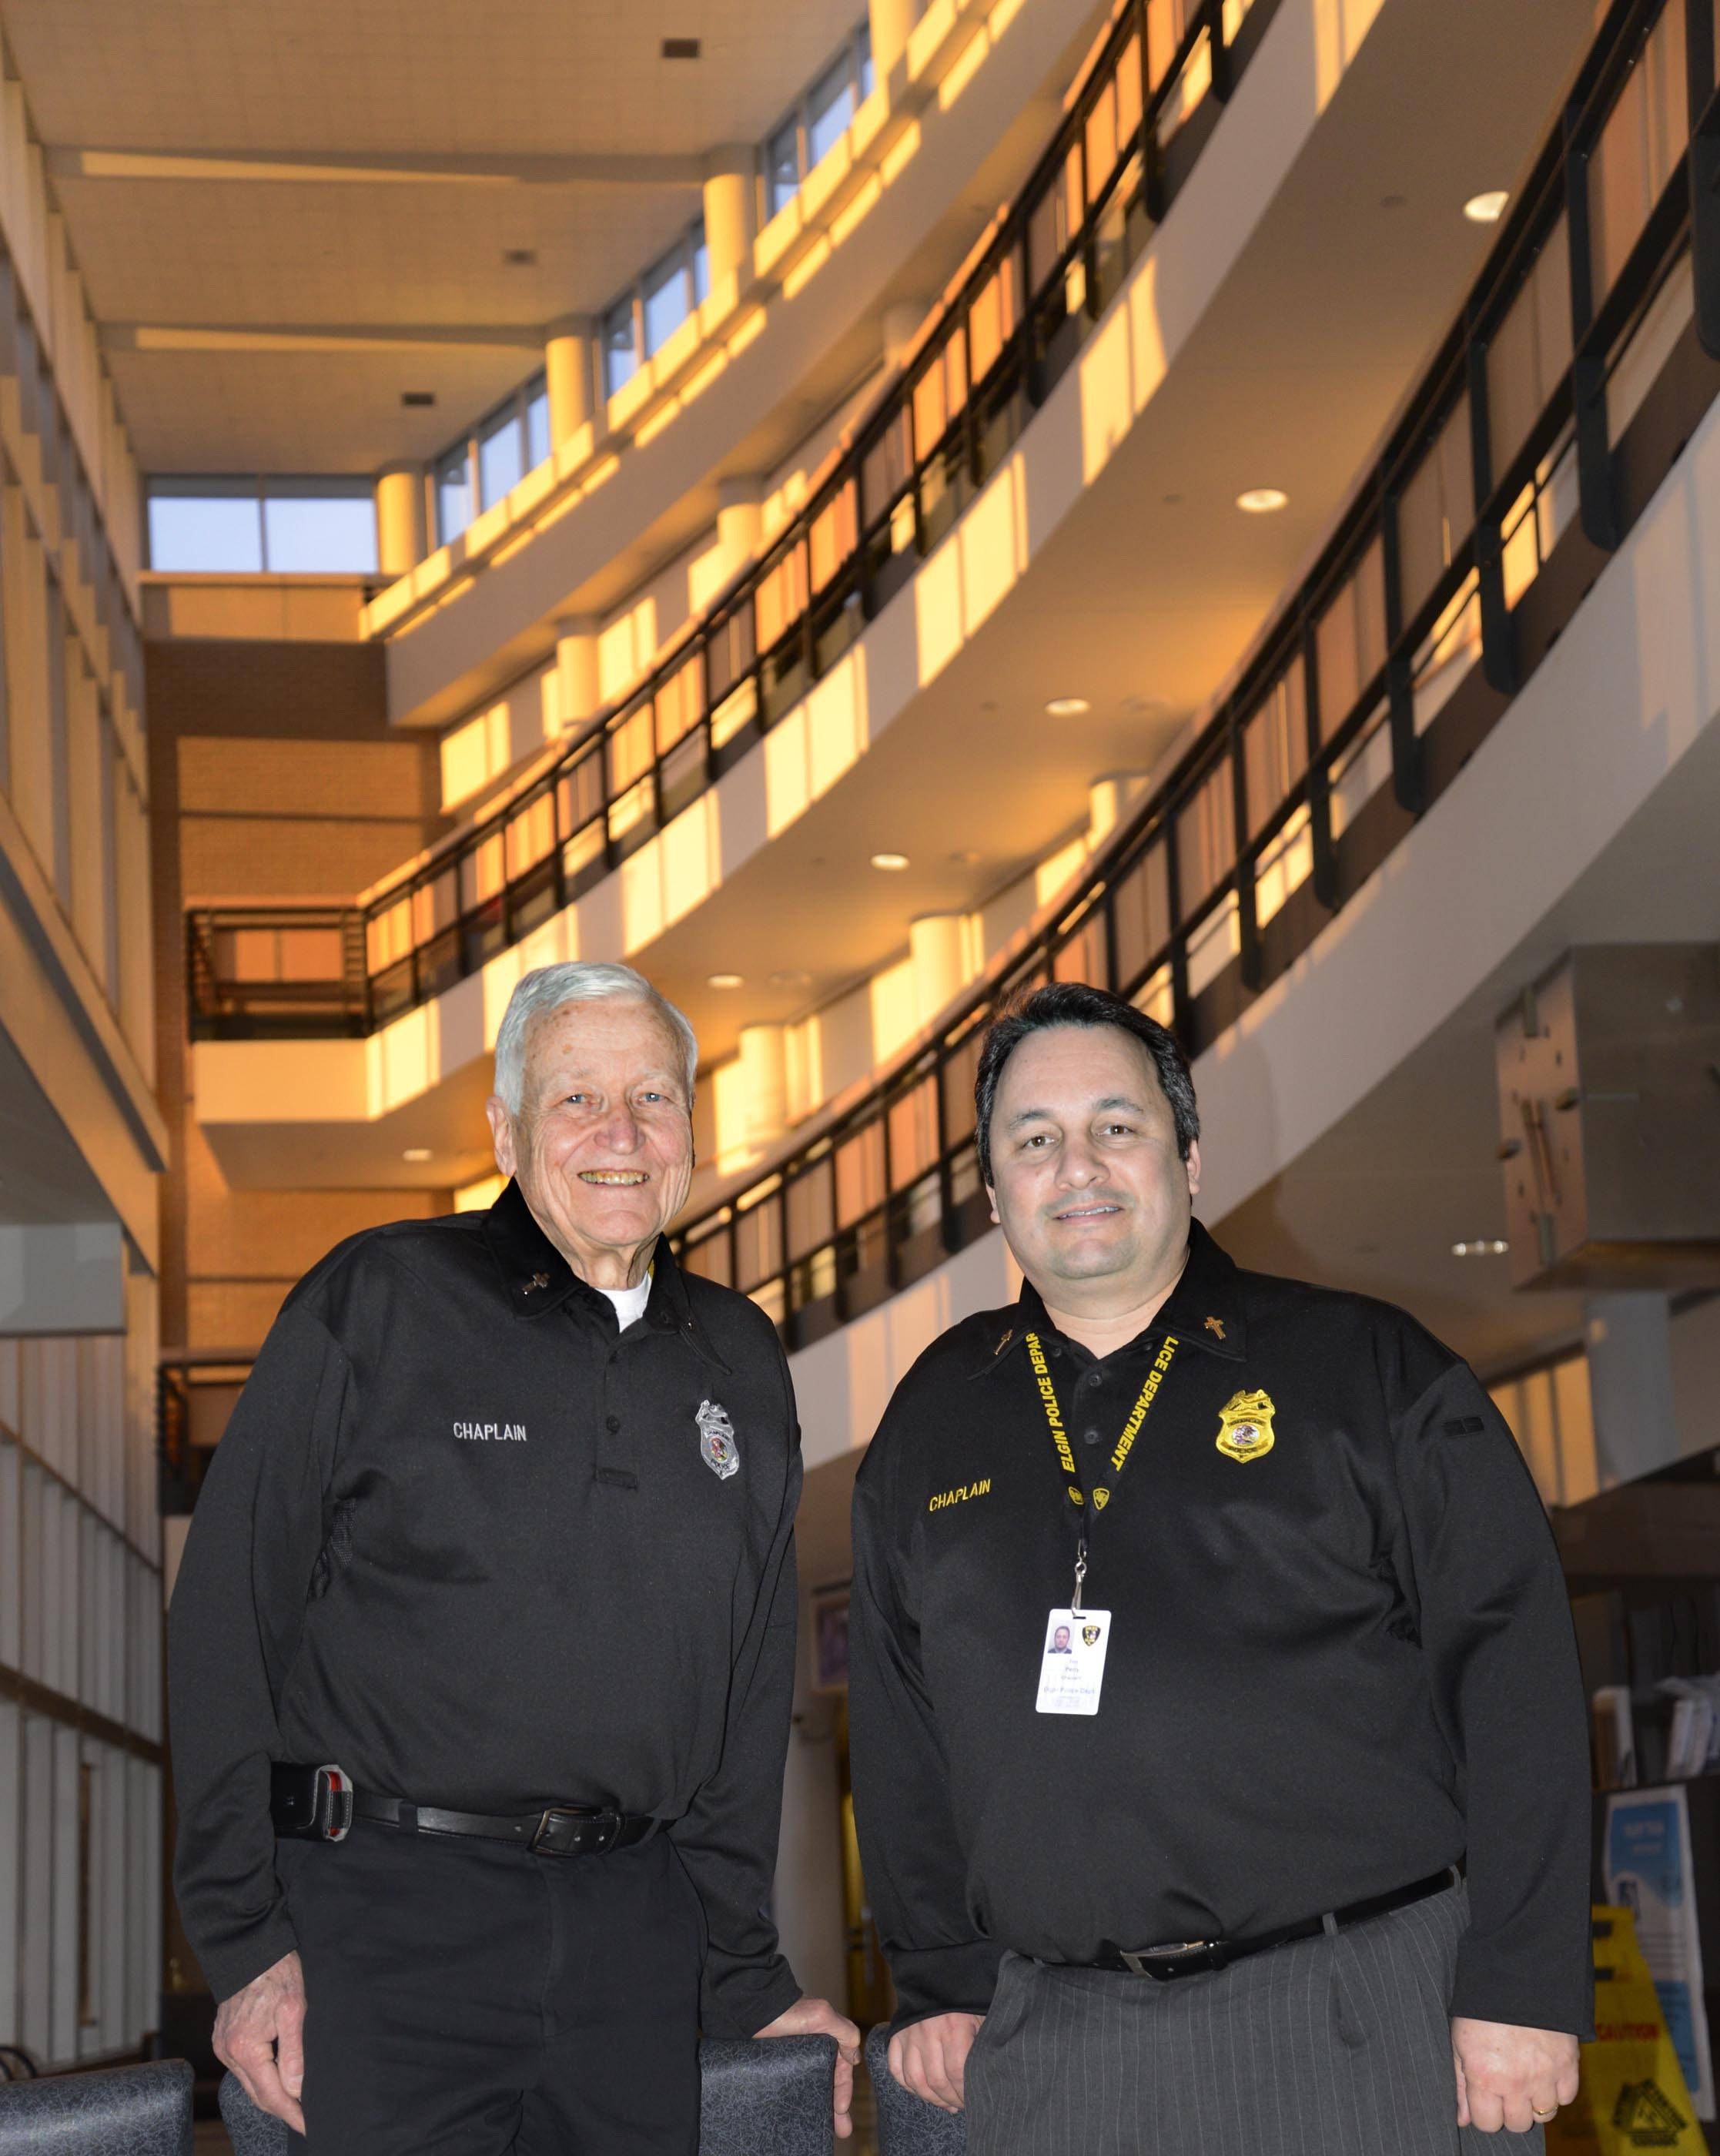 Carl Ball, left, and Tim Perry are chaplains with the Elgin Police Department. Perry is working on expanding the scope of the Northwest Corridor Chaplaincy Service to help place chaplains at police and fire departments across the suburbs.